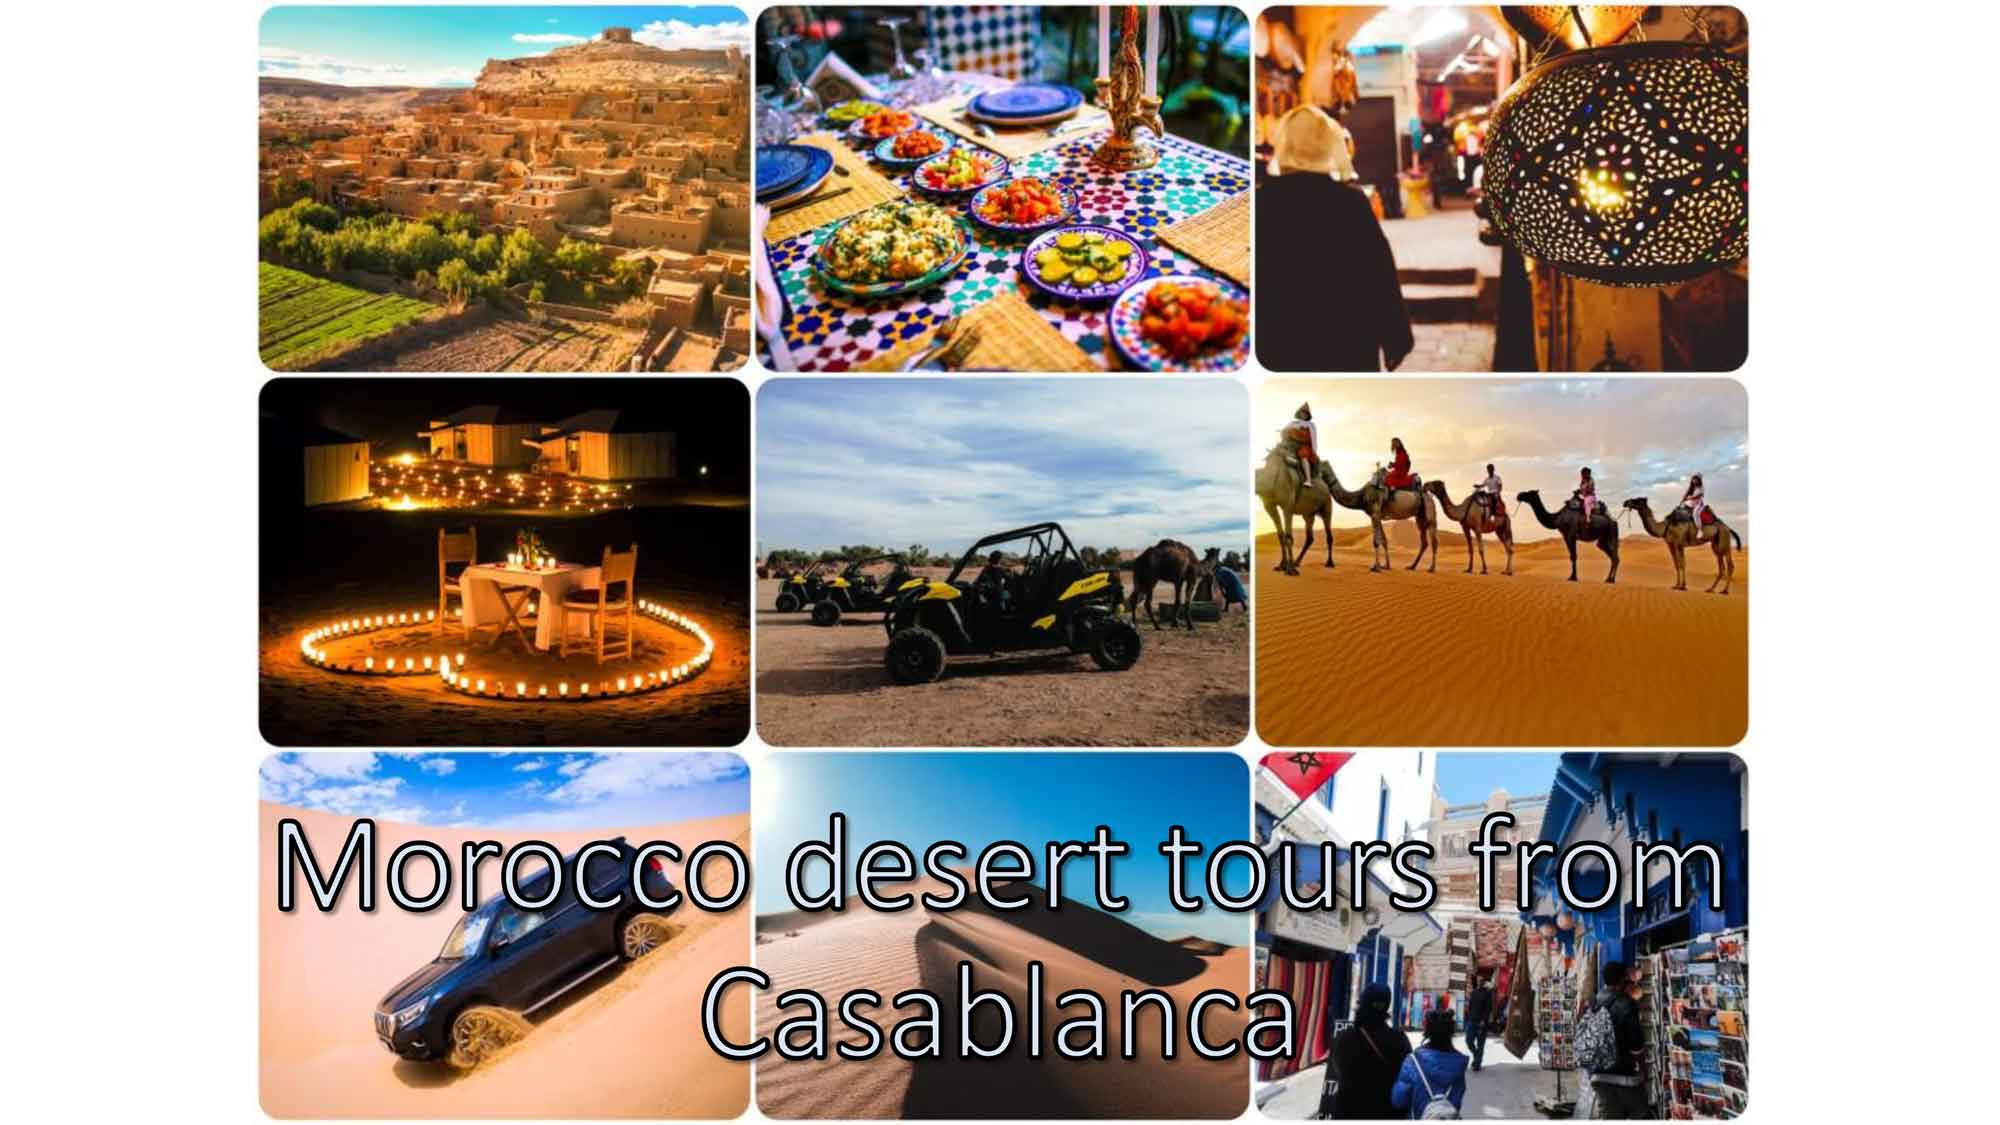 Morocco desert tours from Casablanca